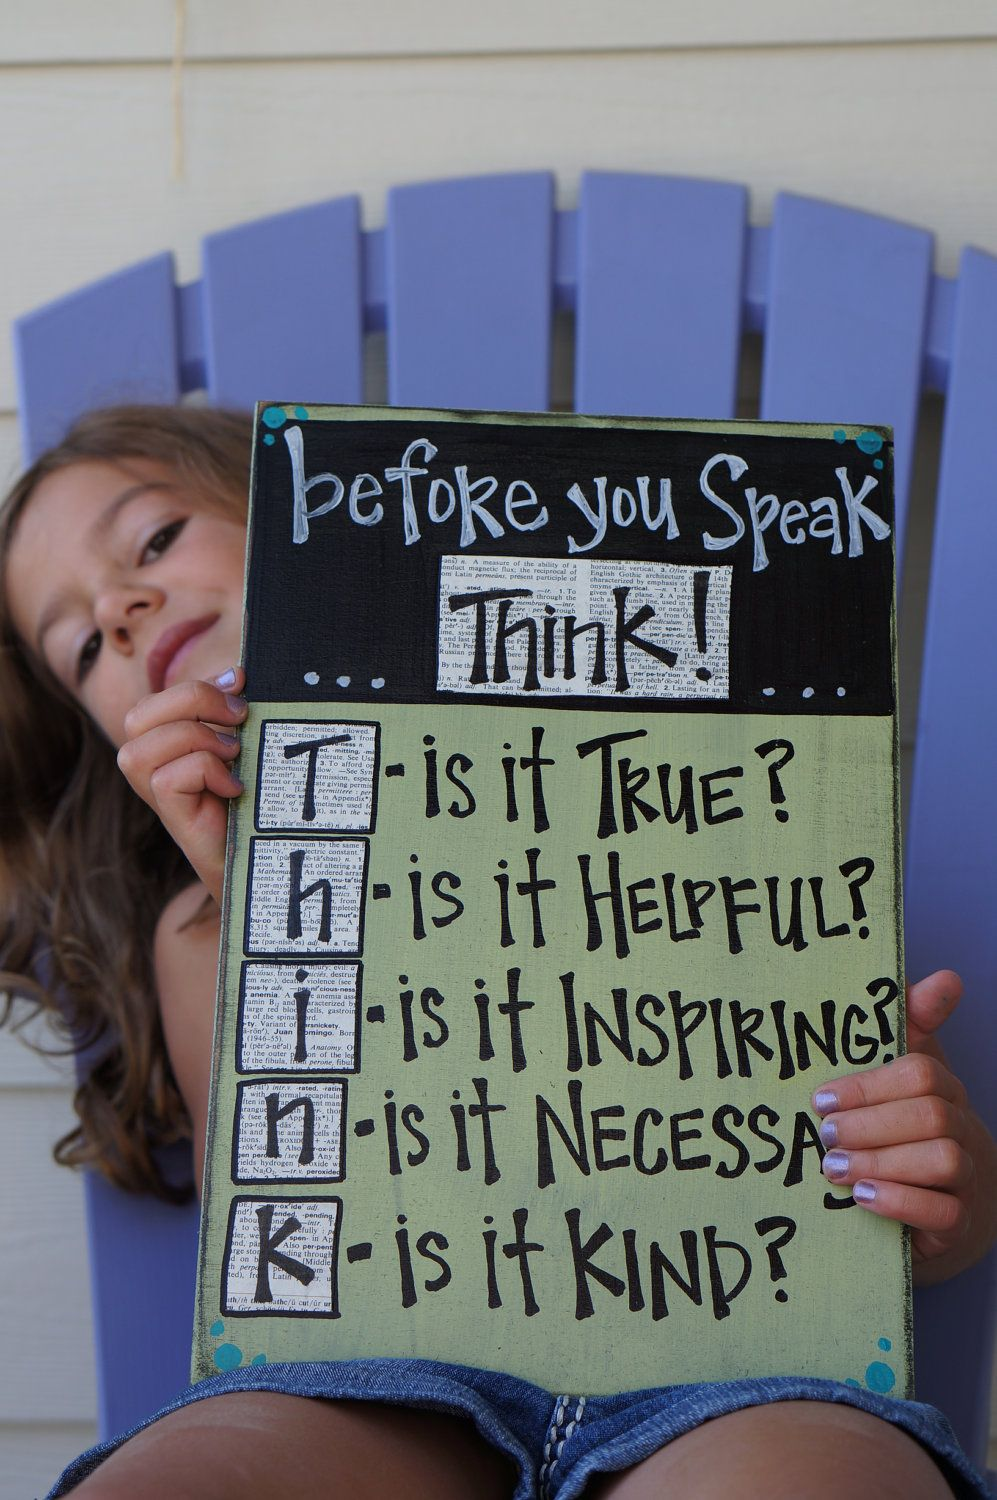 before you speak...think recommended by Charlotte's Clips   http://pinterest.com/kindkids/religious-education/